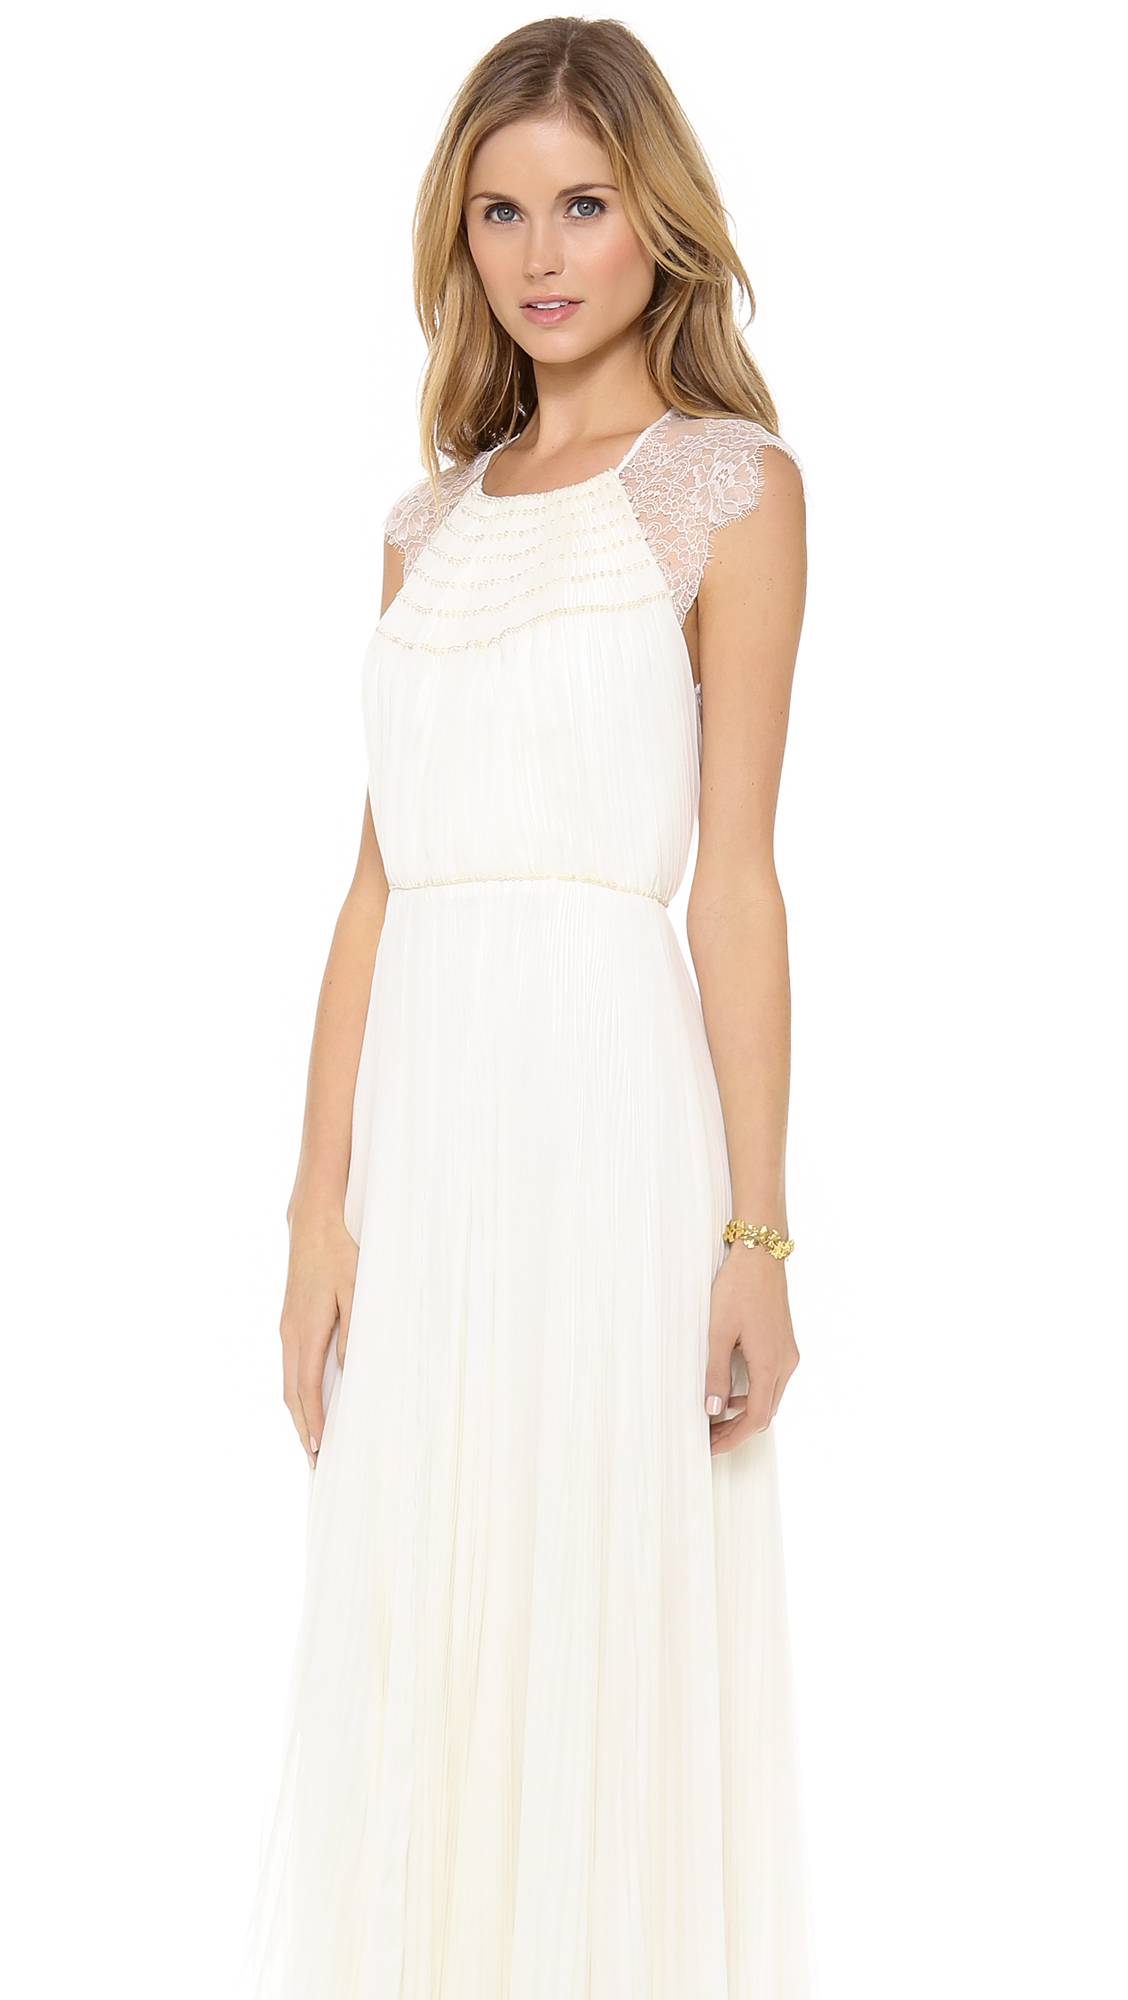 Catherine Deane Patsy Gown in Natural - Lyst